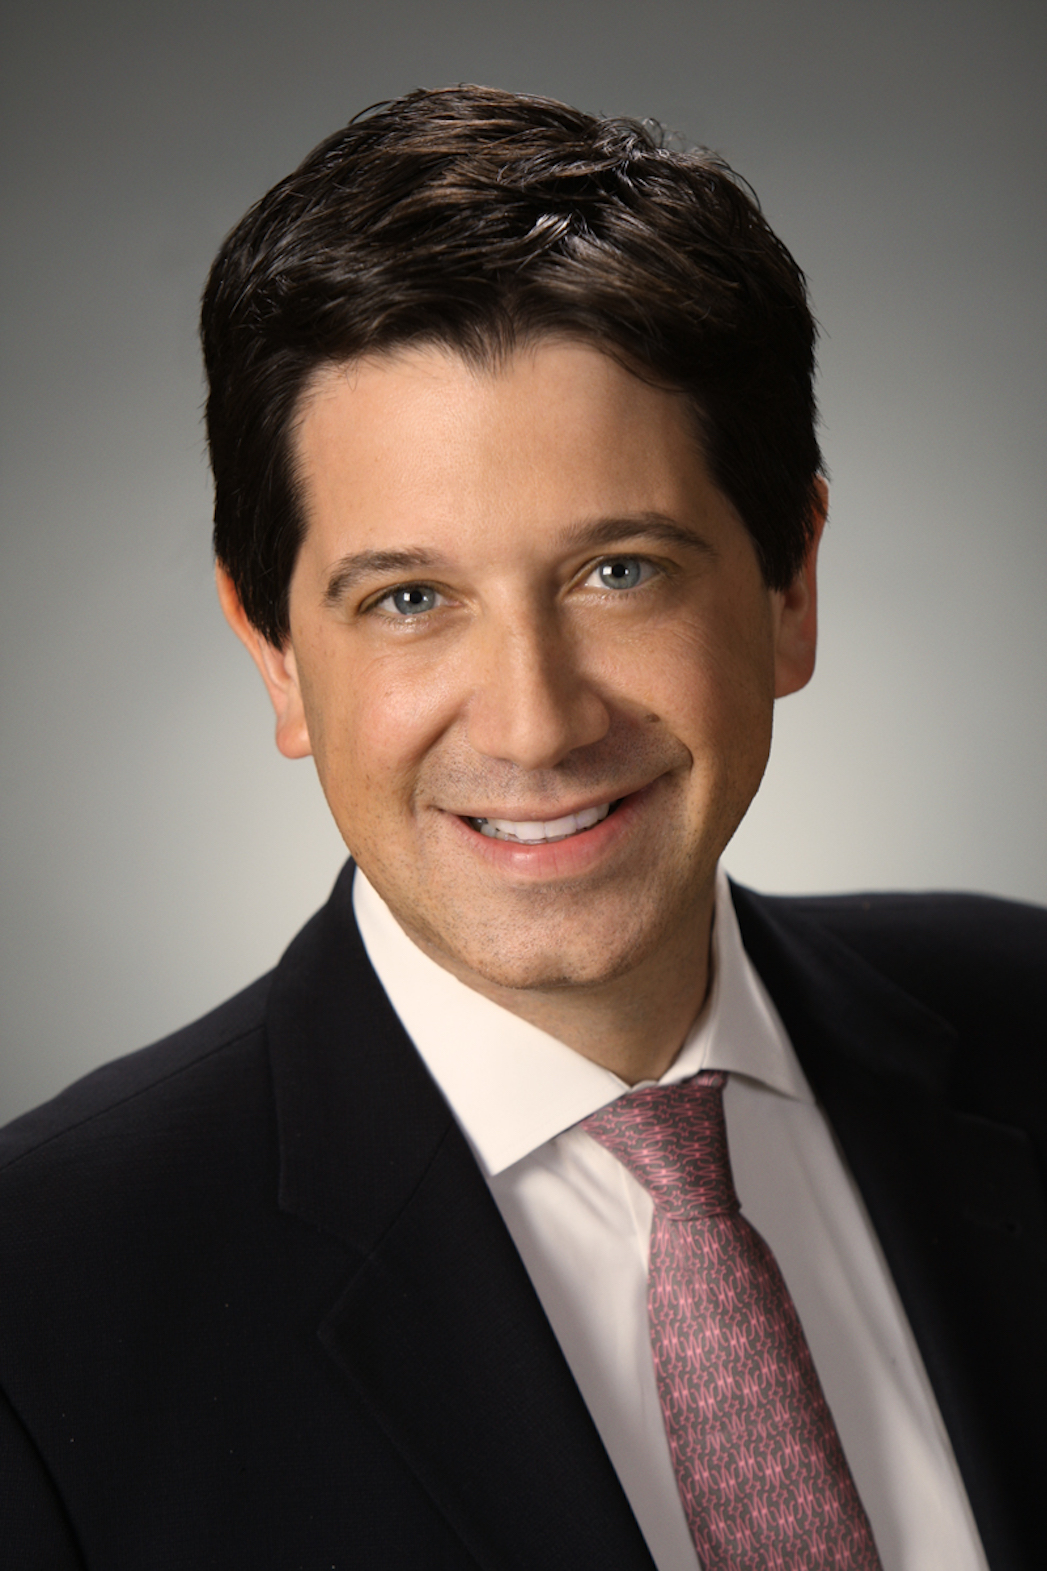 Andrew Stearn President Working Title Television U.S.